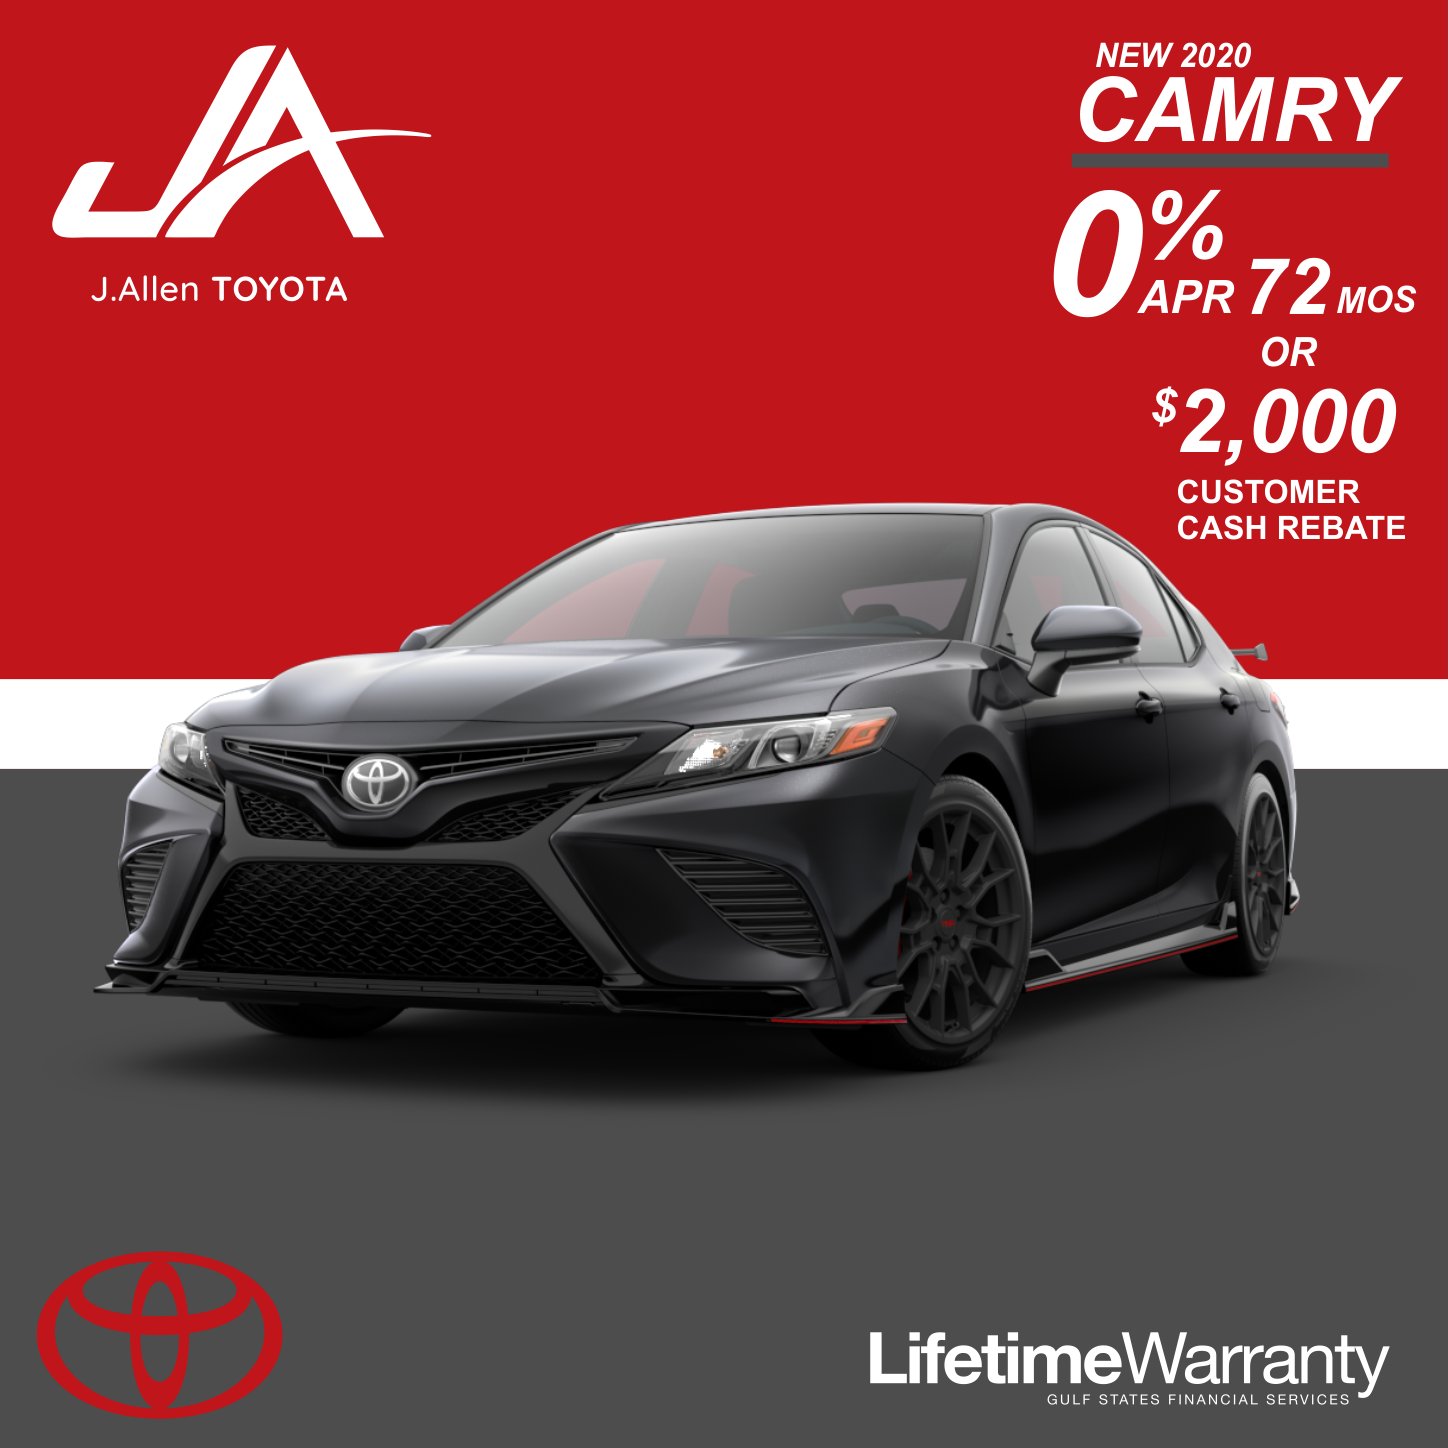 New 2020 Camry 0% APR for 72 Months!